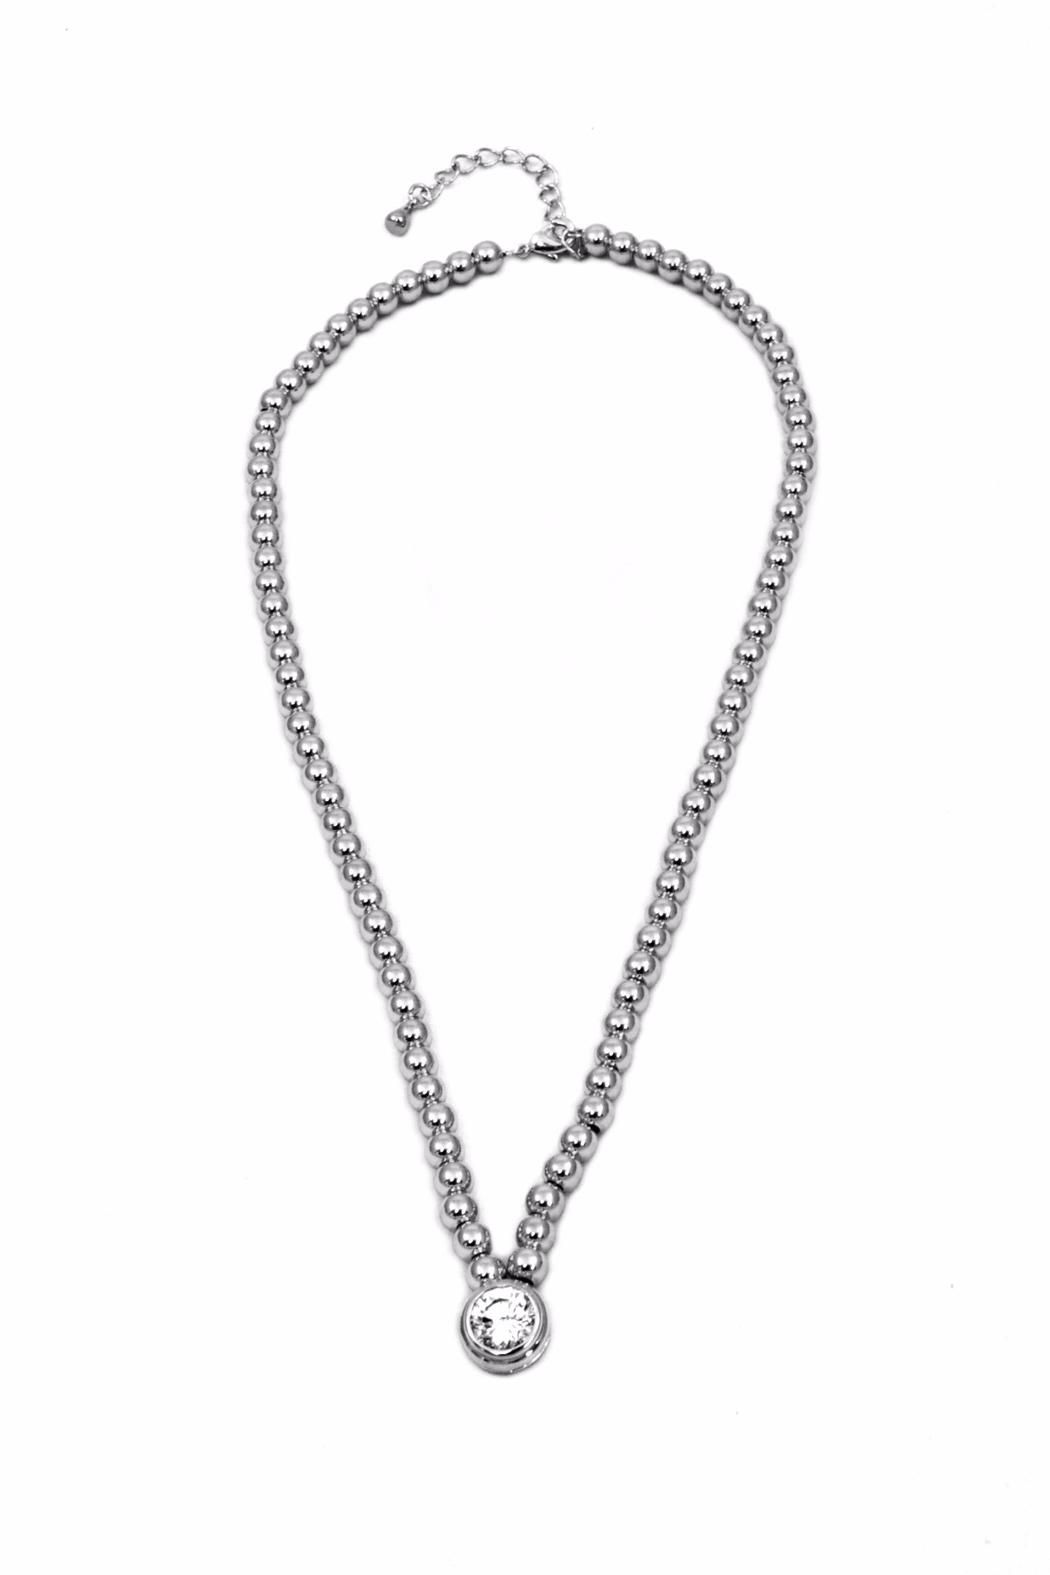 """Beaded chain with center bezel set cubic zirconia. Lead and nickel compliant.    Measures: 16"""" - 18"""" L   Beaded Necklace by INT. Accessories - Jewelry - Necklaces Florida"""